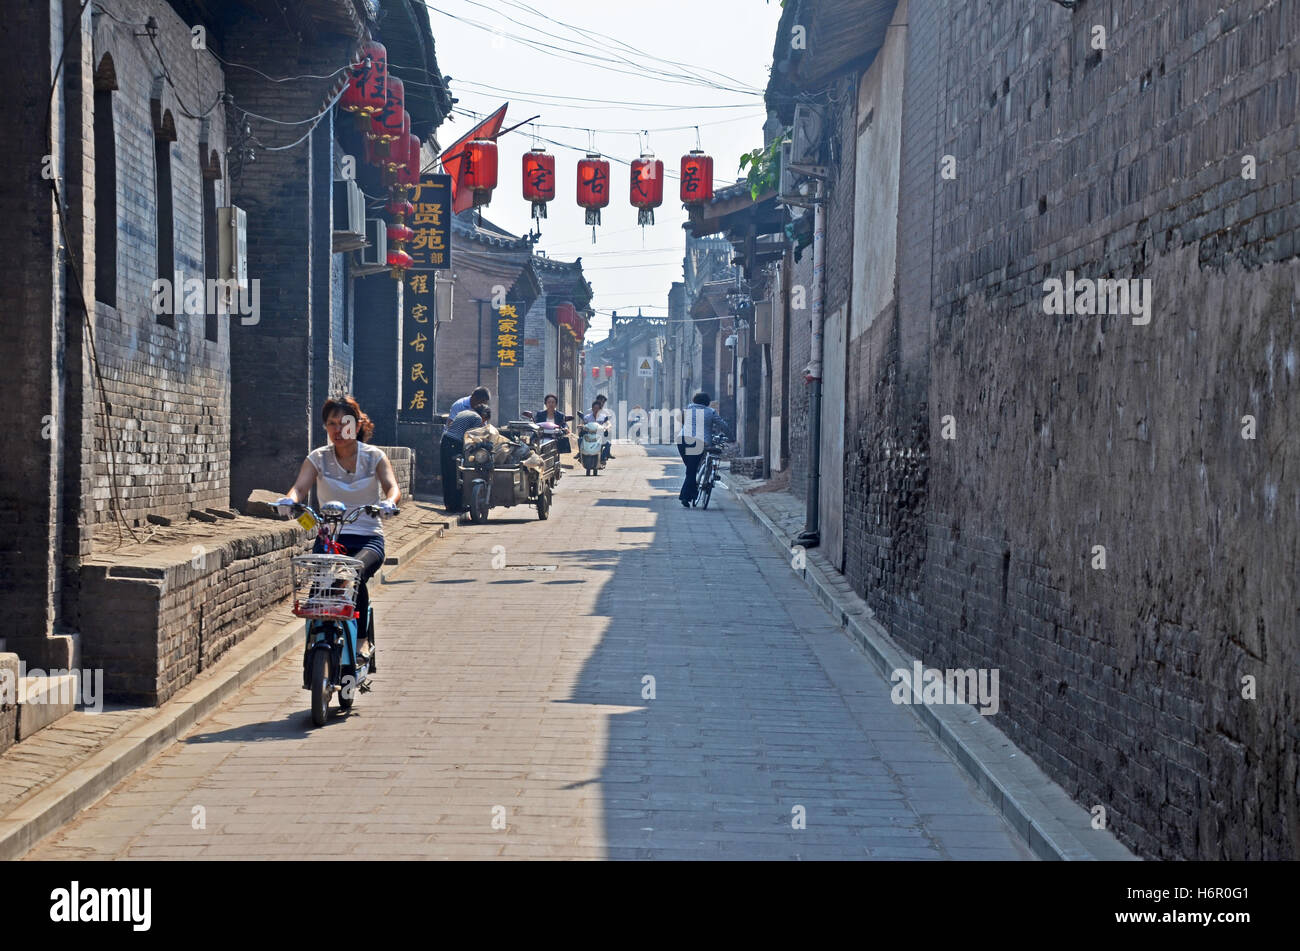 A woman rides a bicycle down a quiet street in Pingyao, Shanxi, China - Stock Image